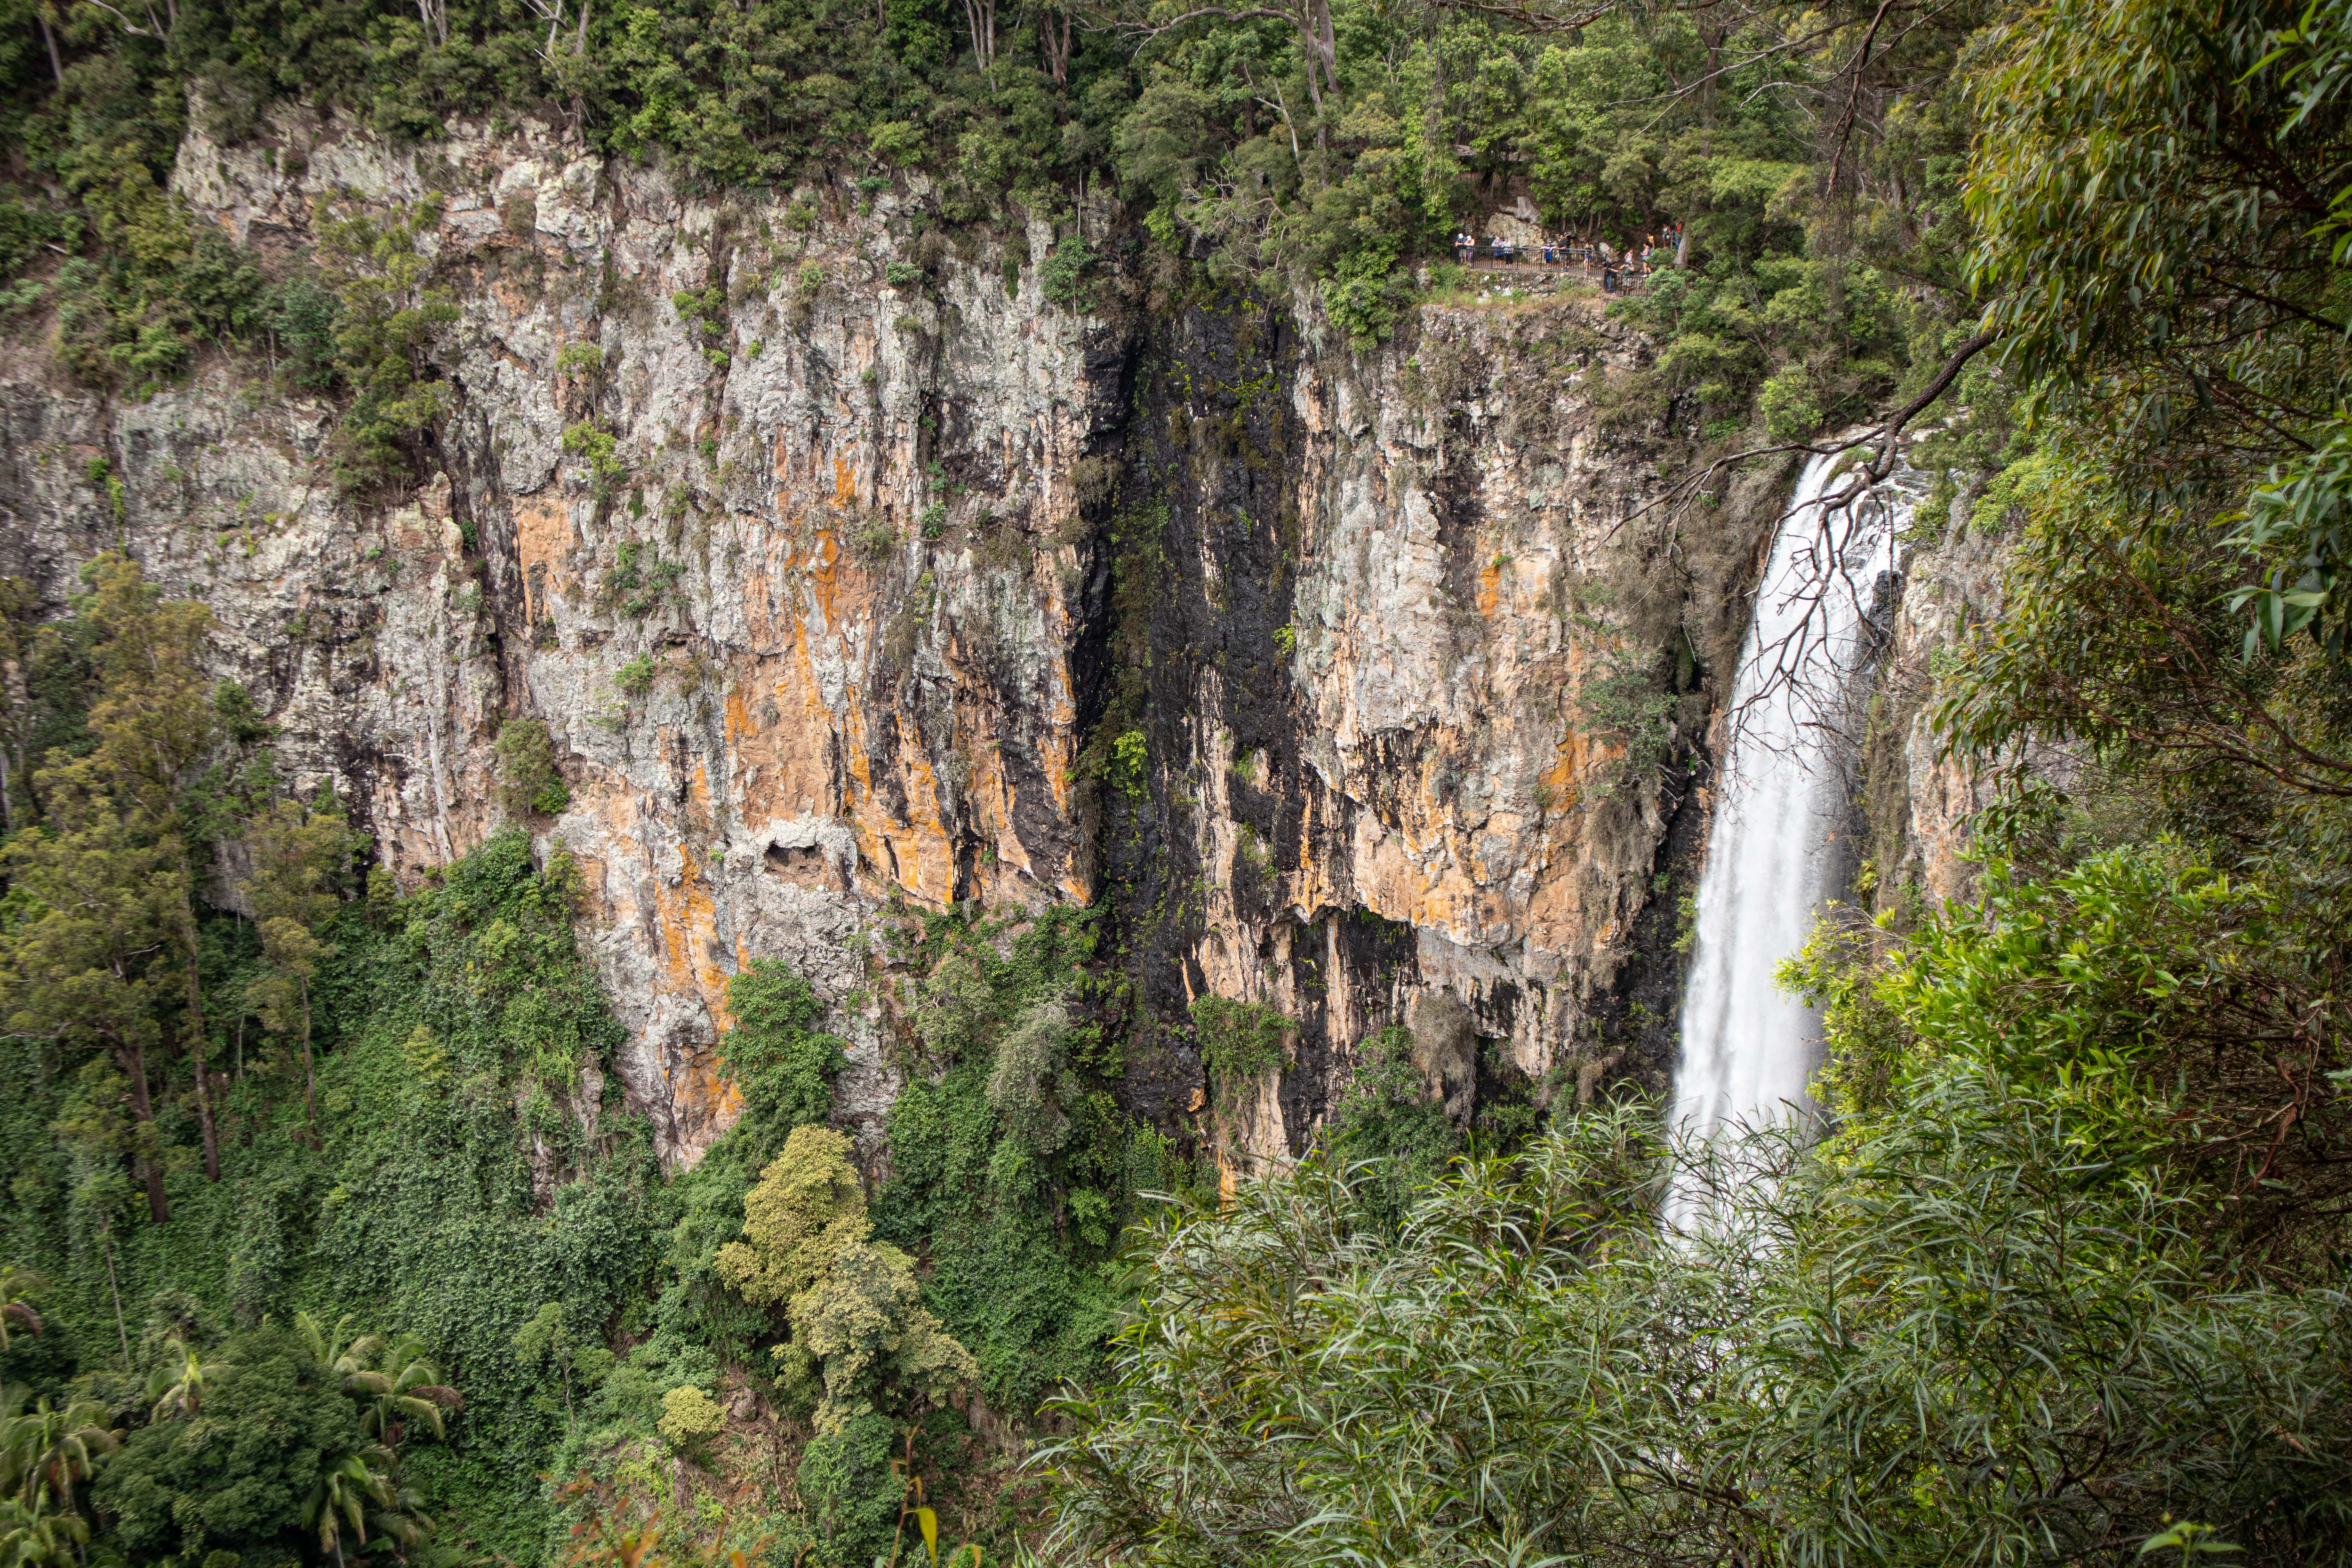 View of Purlingbrook Falls in Springbrook National Park from lookout